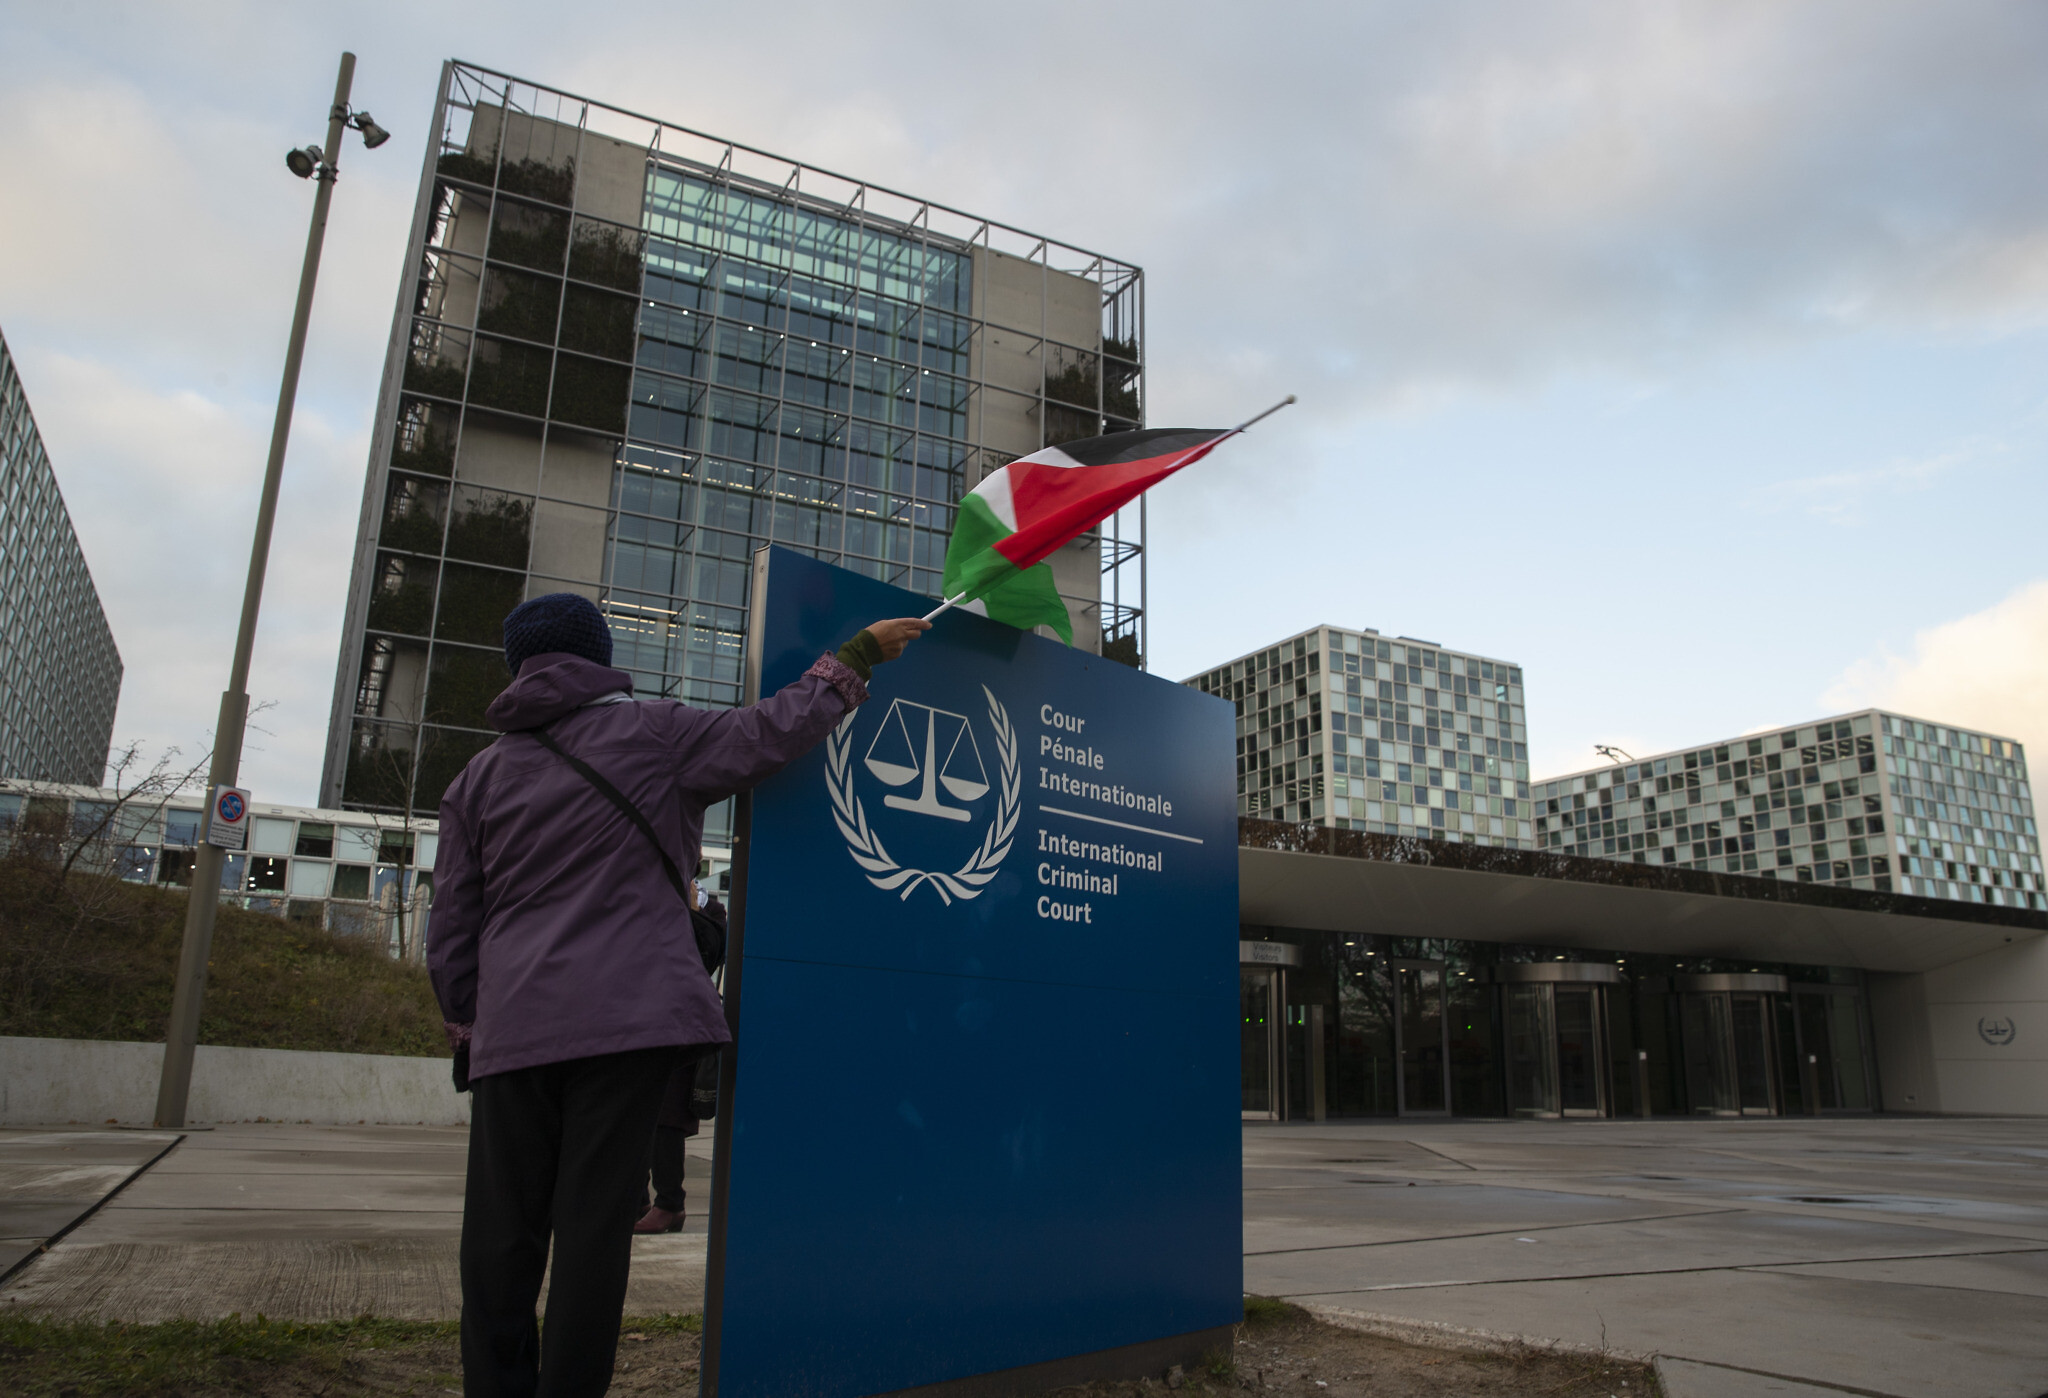 Western envoys warn ICC its future is at risk over probe of Israel, Palestinians